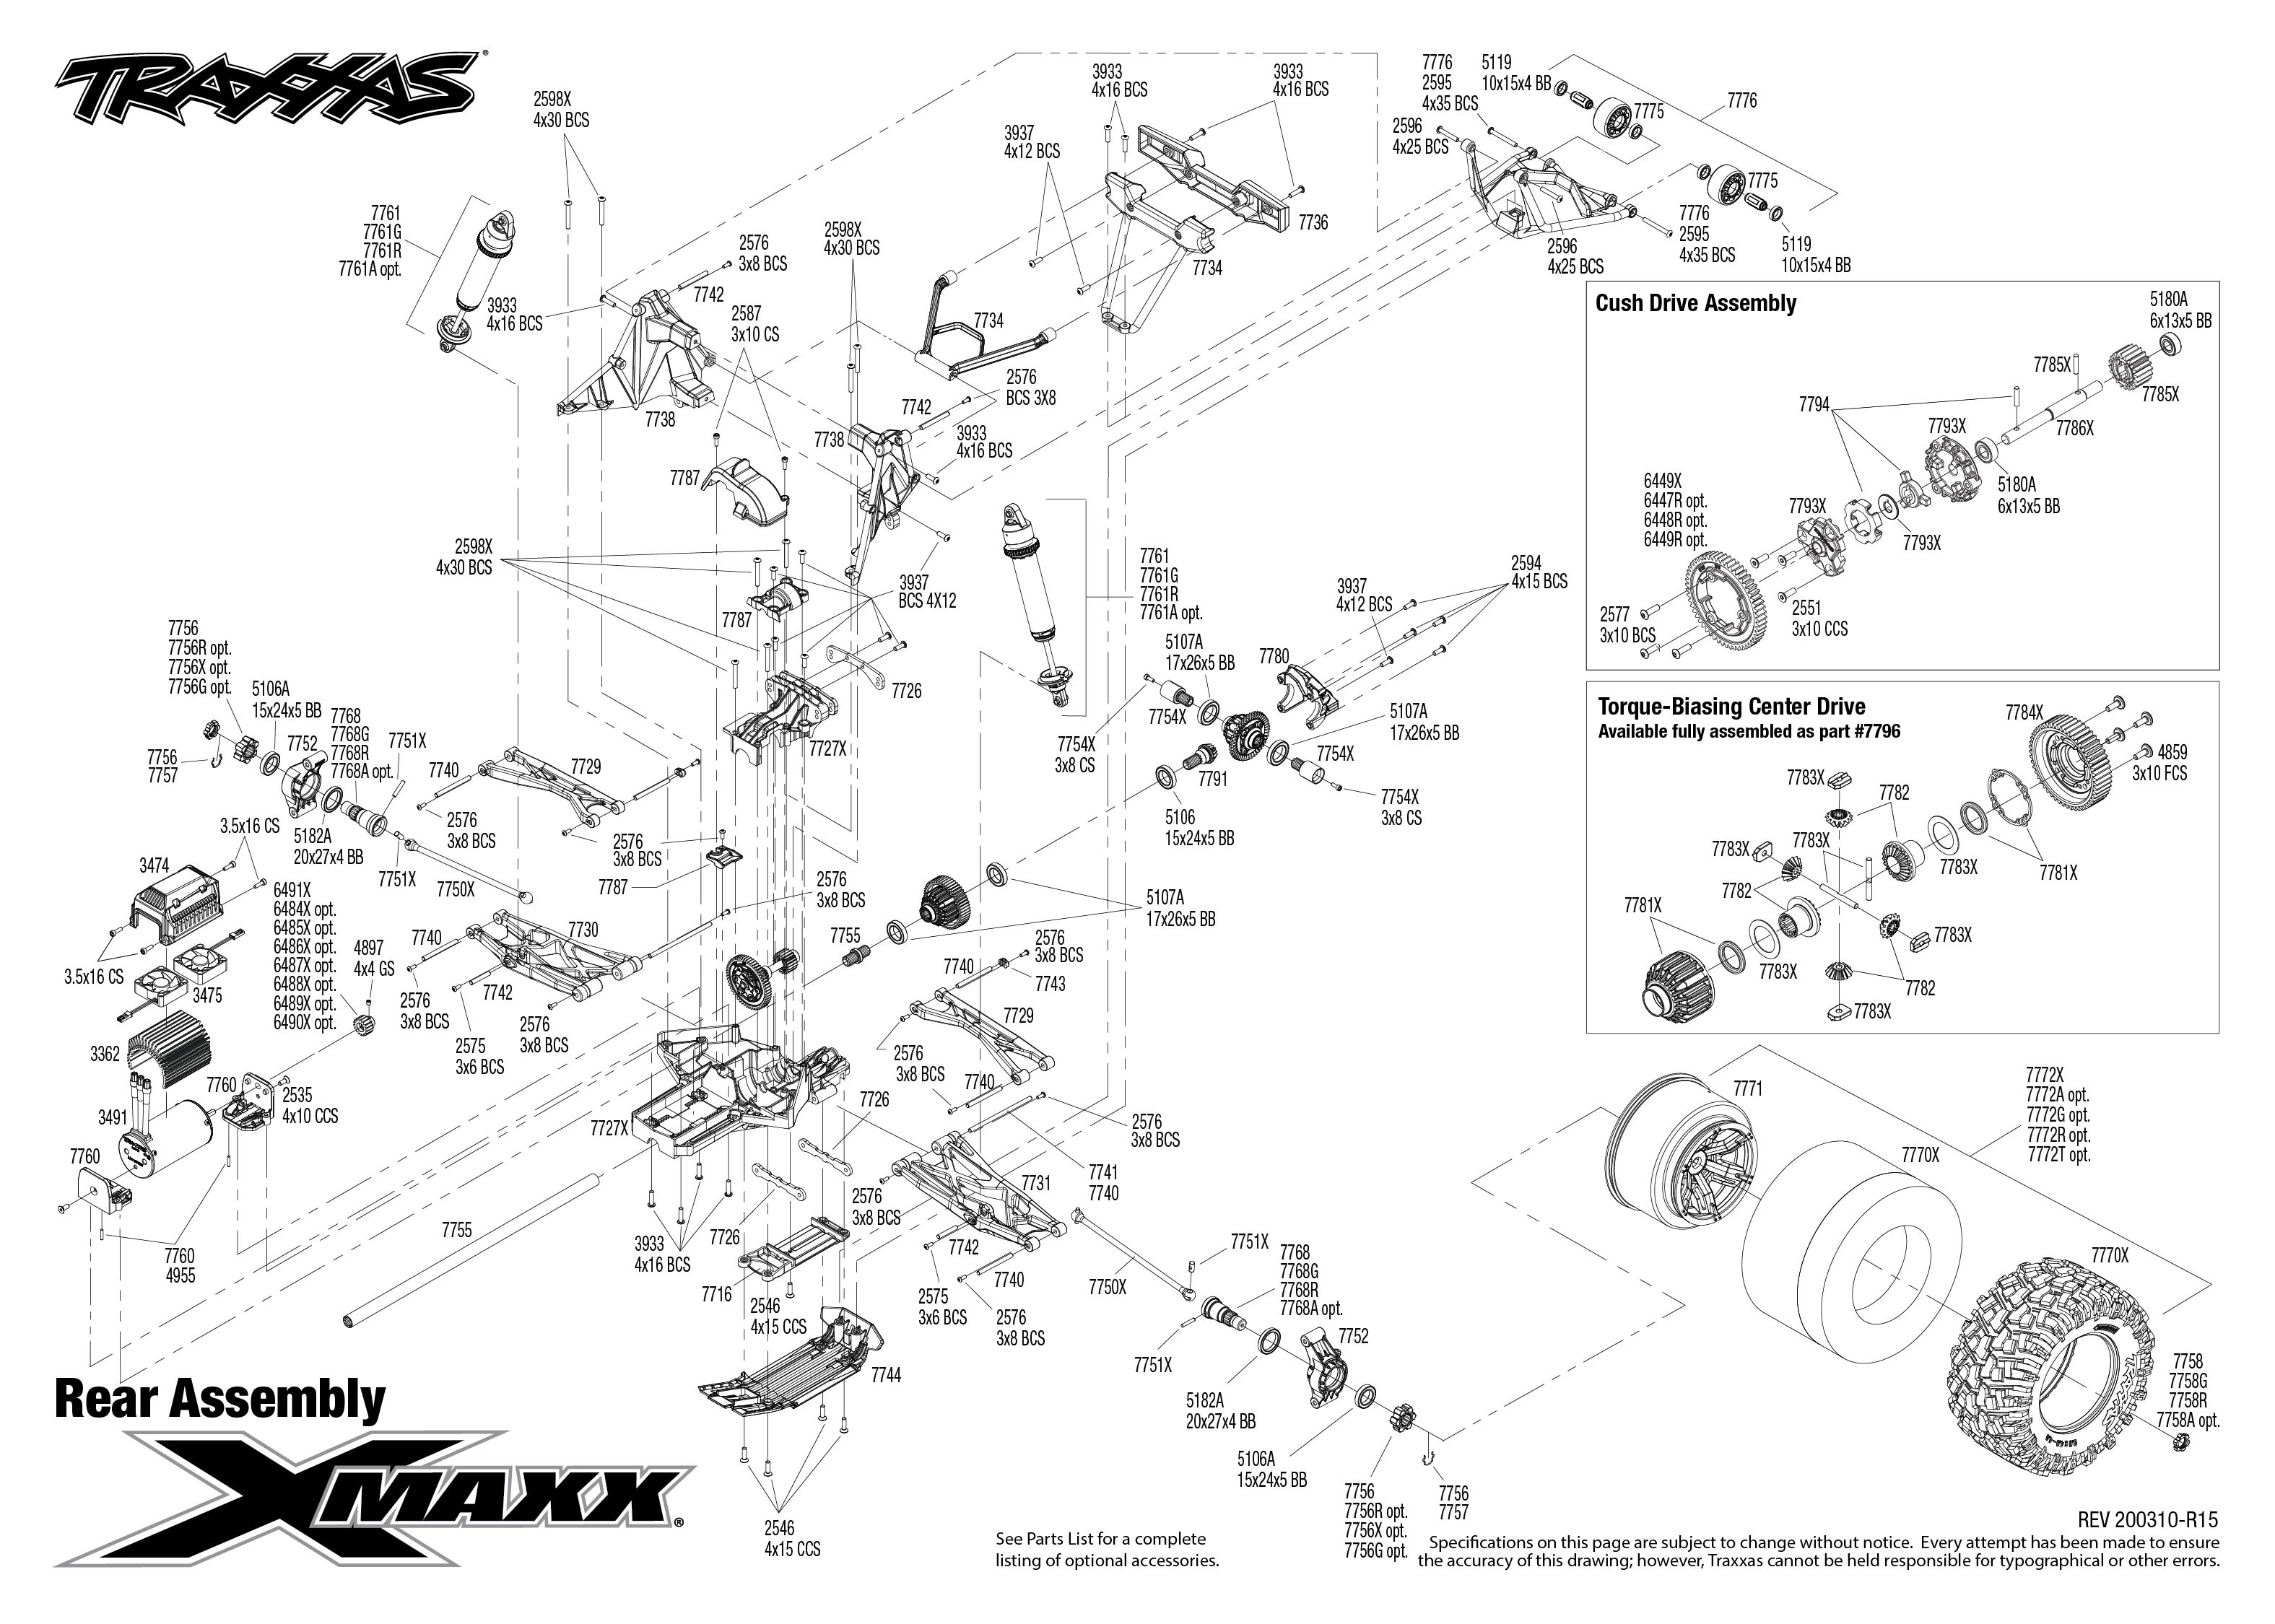 Traxxas X-Maxx 1/5 4WD Brushless RTR Monster Truck with